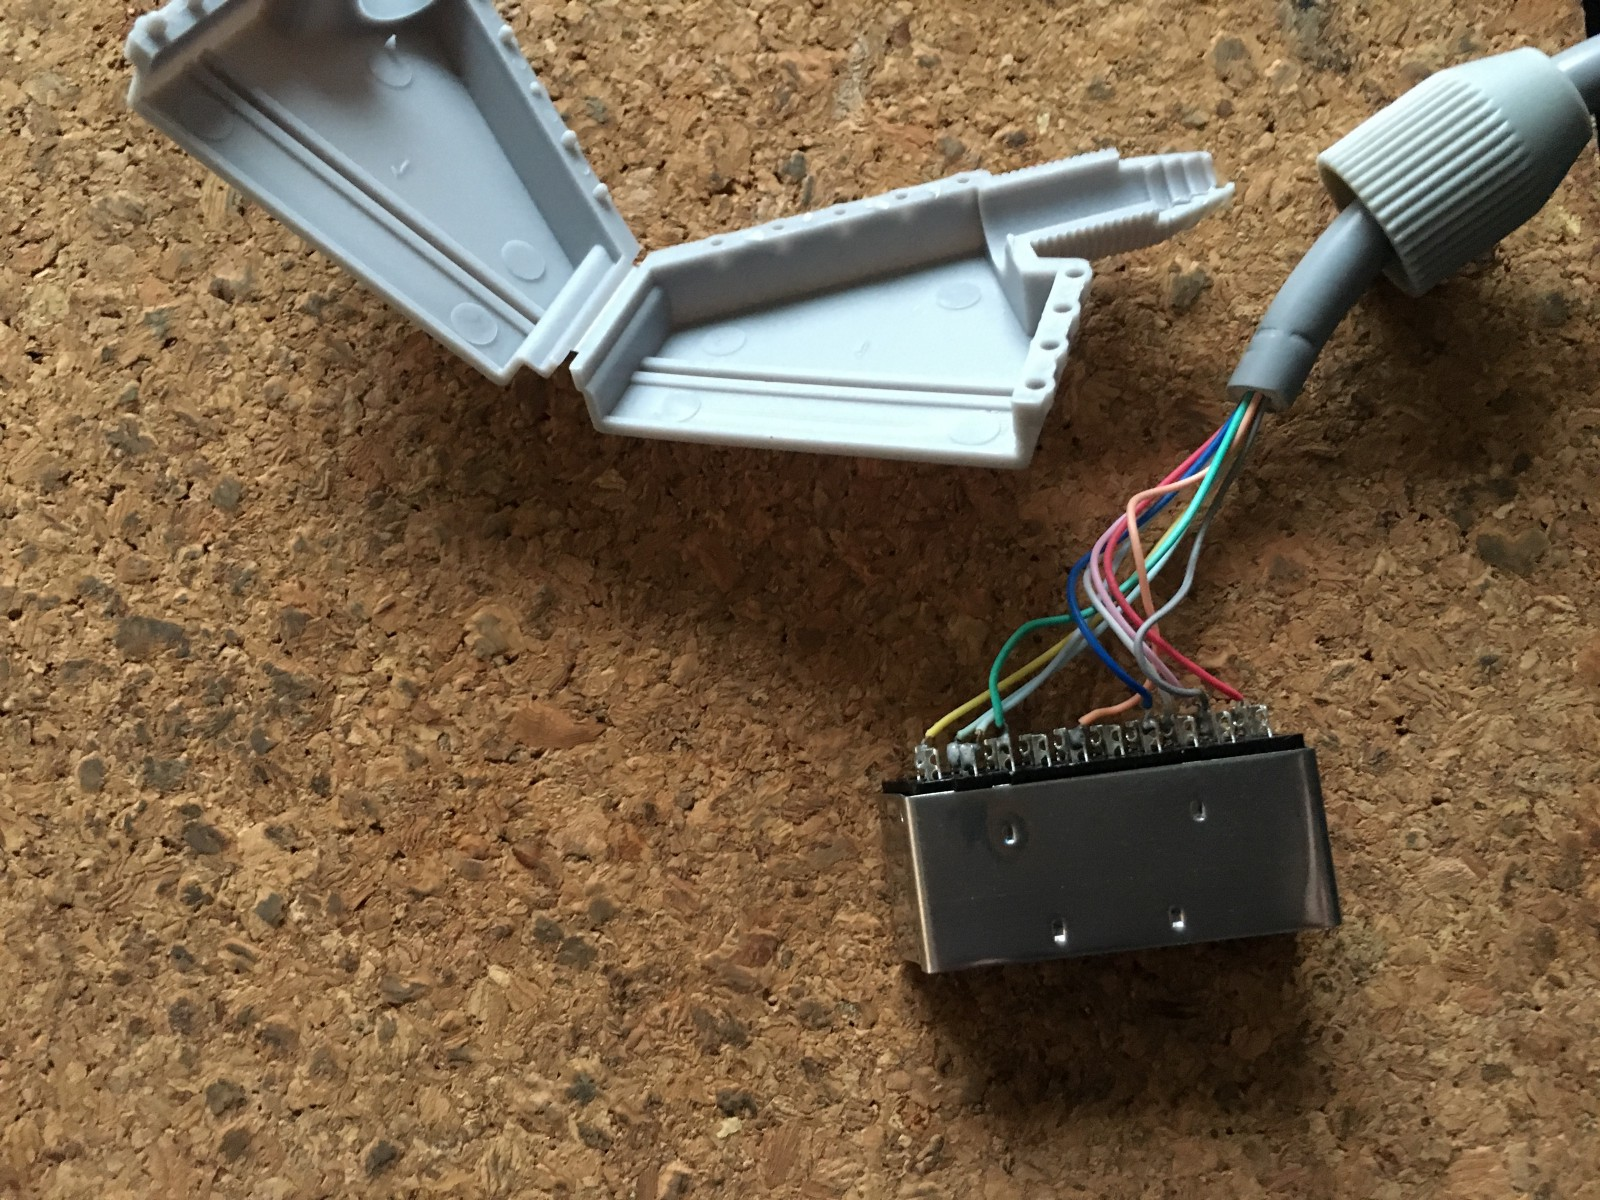 How To Fix A Misbuilt Third Party Wii Rgb Cable Pr Strindevall Wire Diagram Scart Guts